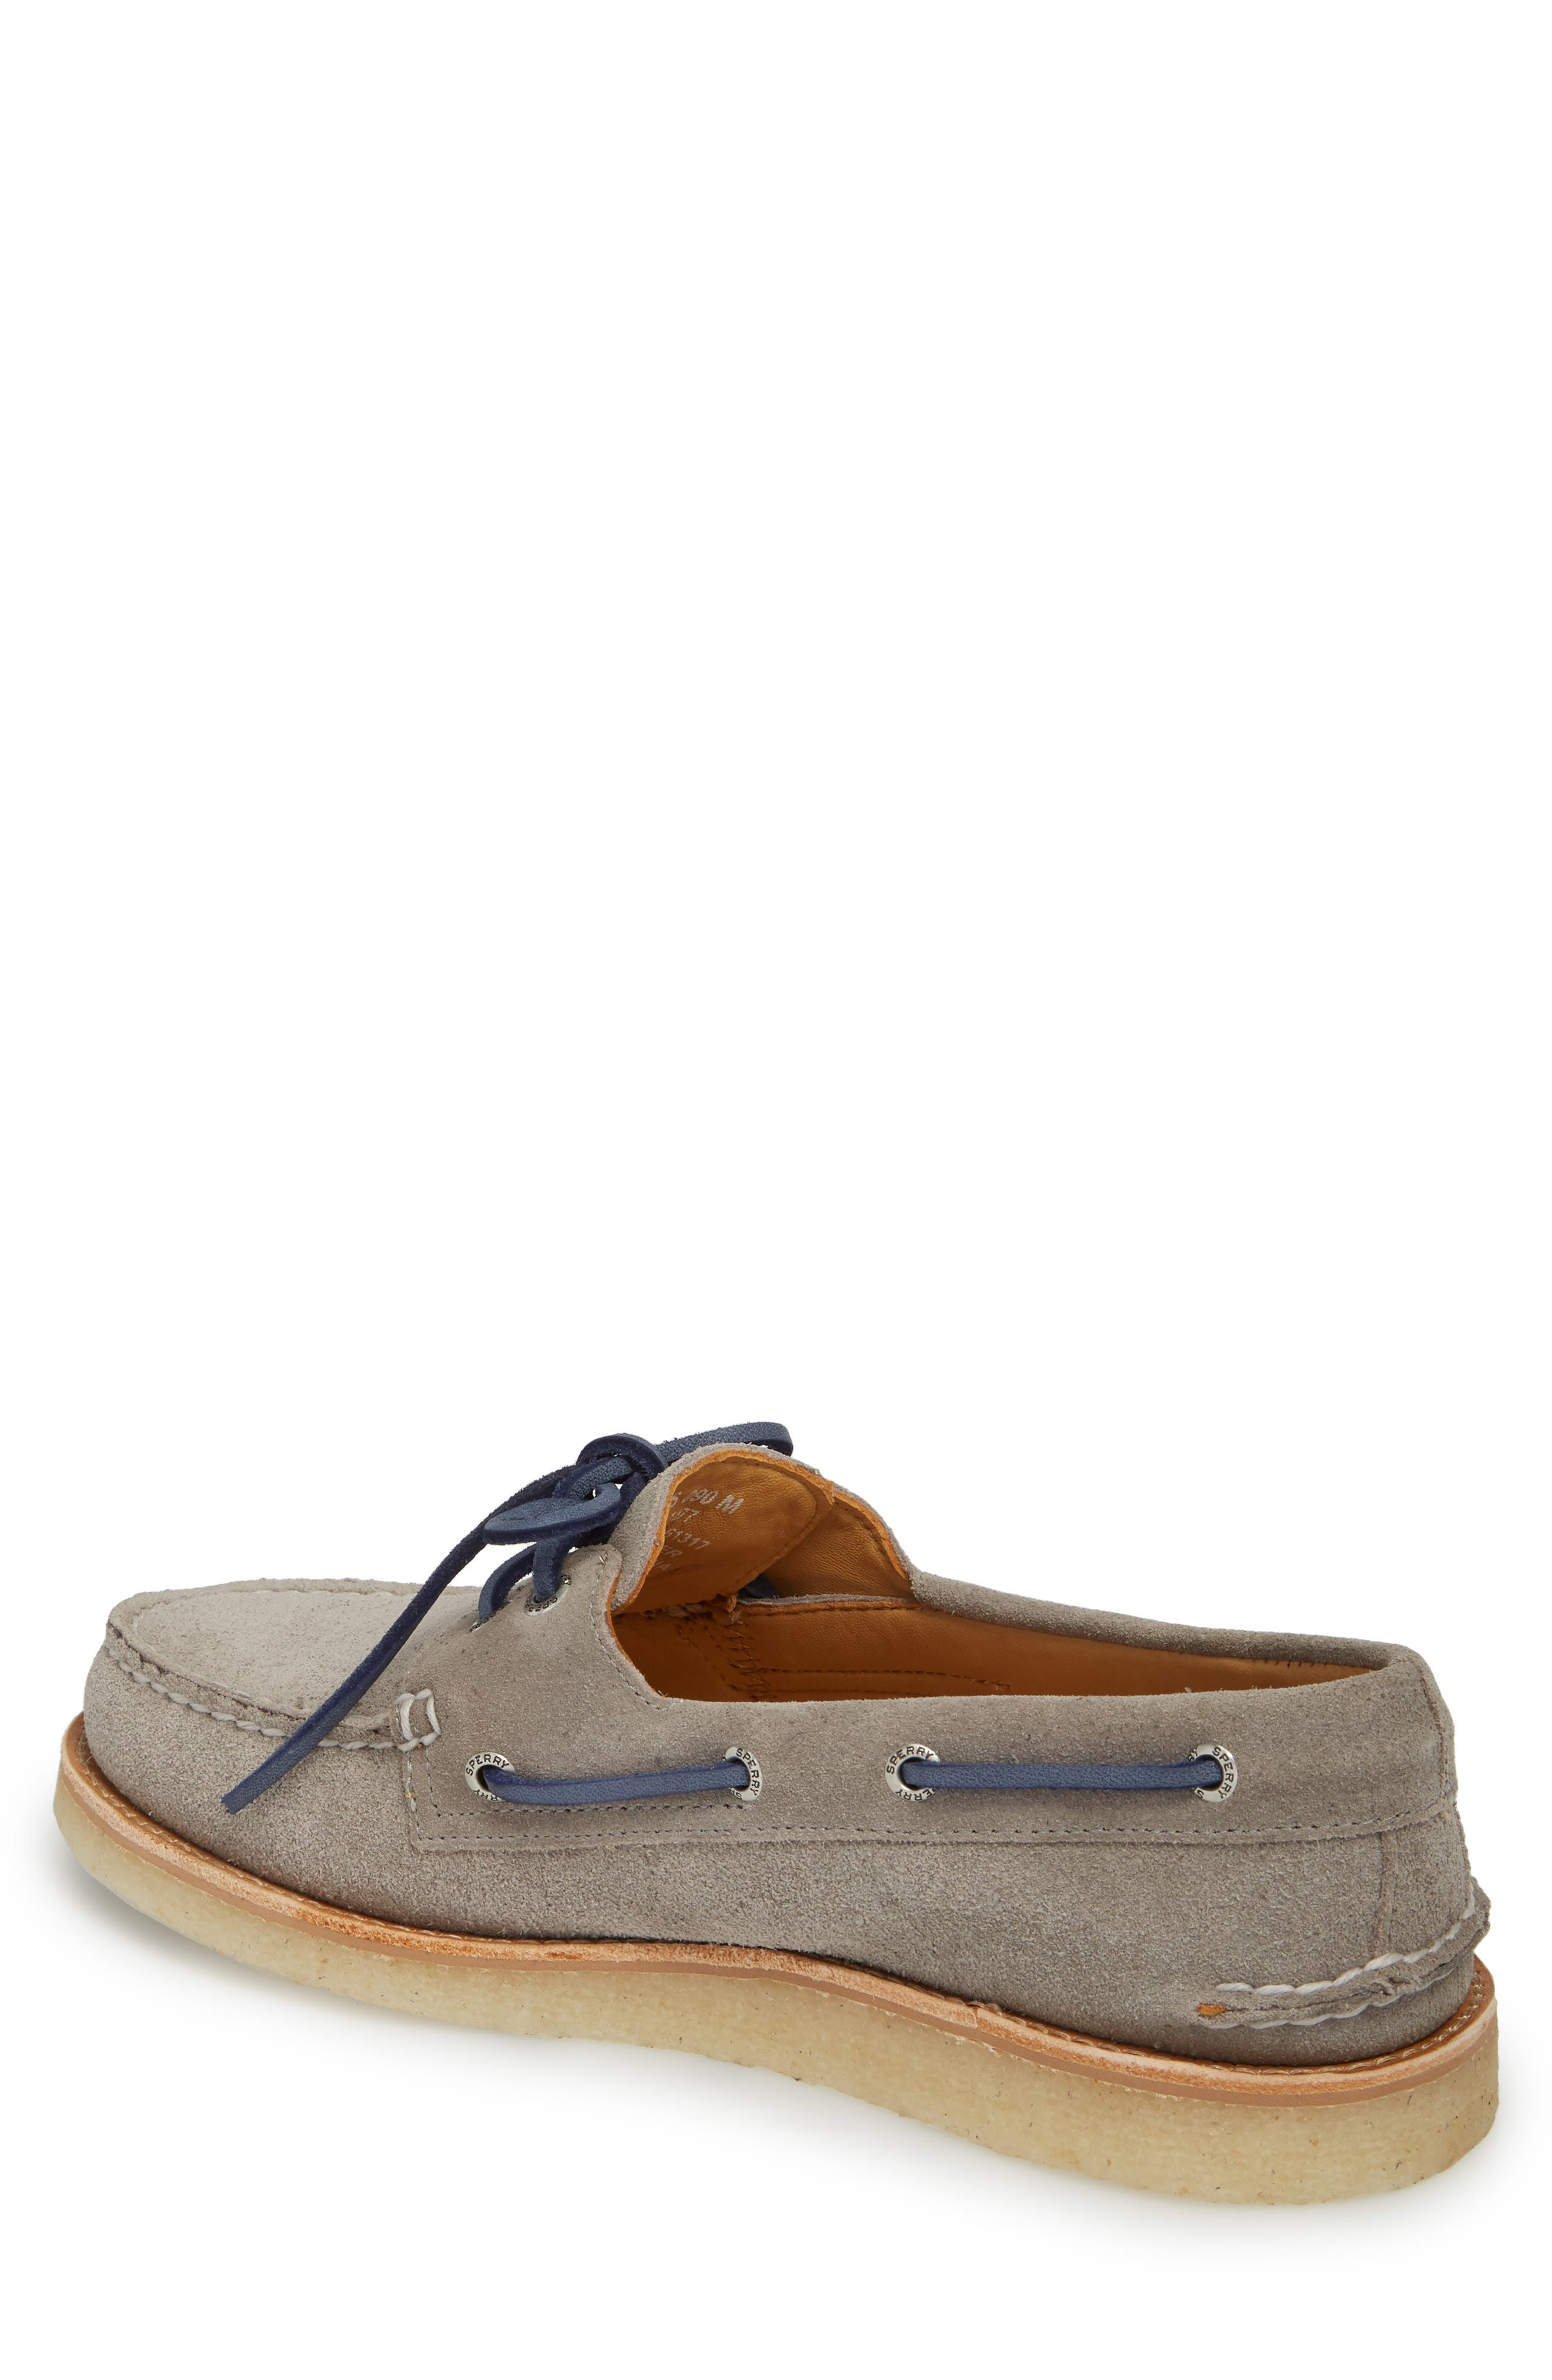 Gold Cup AO 2-Eye Boat Shoe,                             Alternate thumbnail 2, color,                             Grey Leather